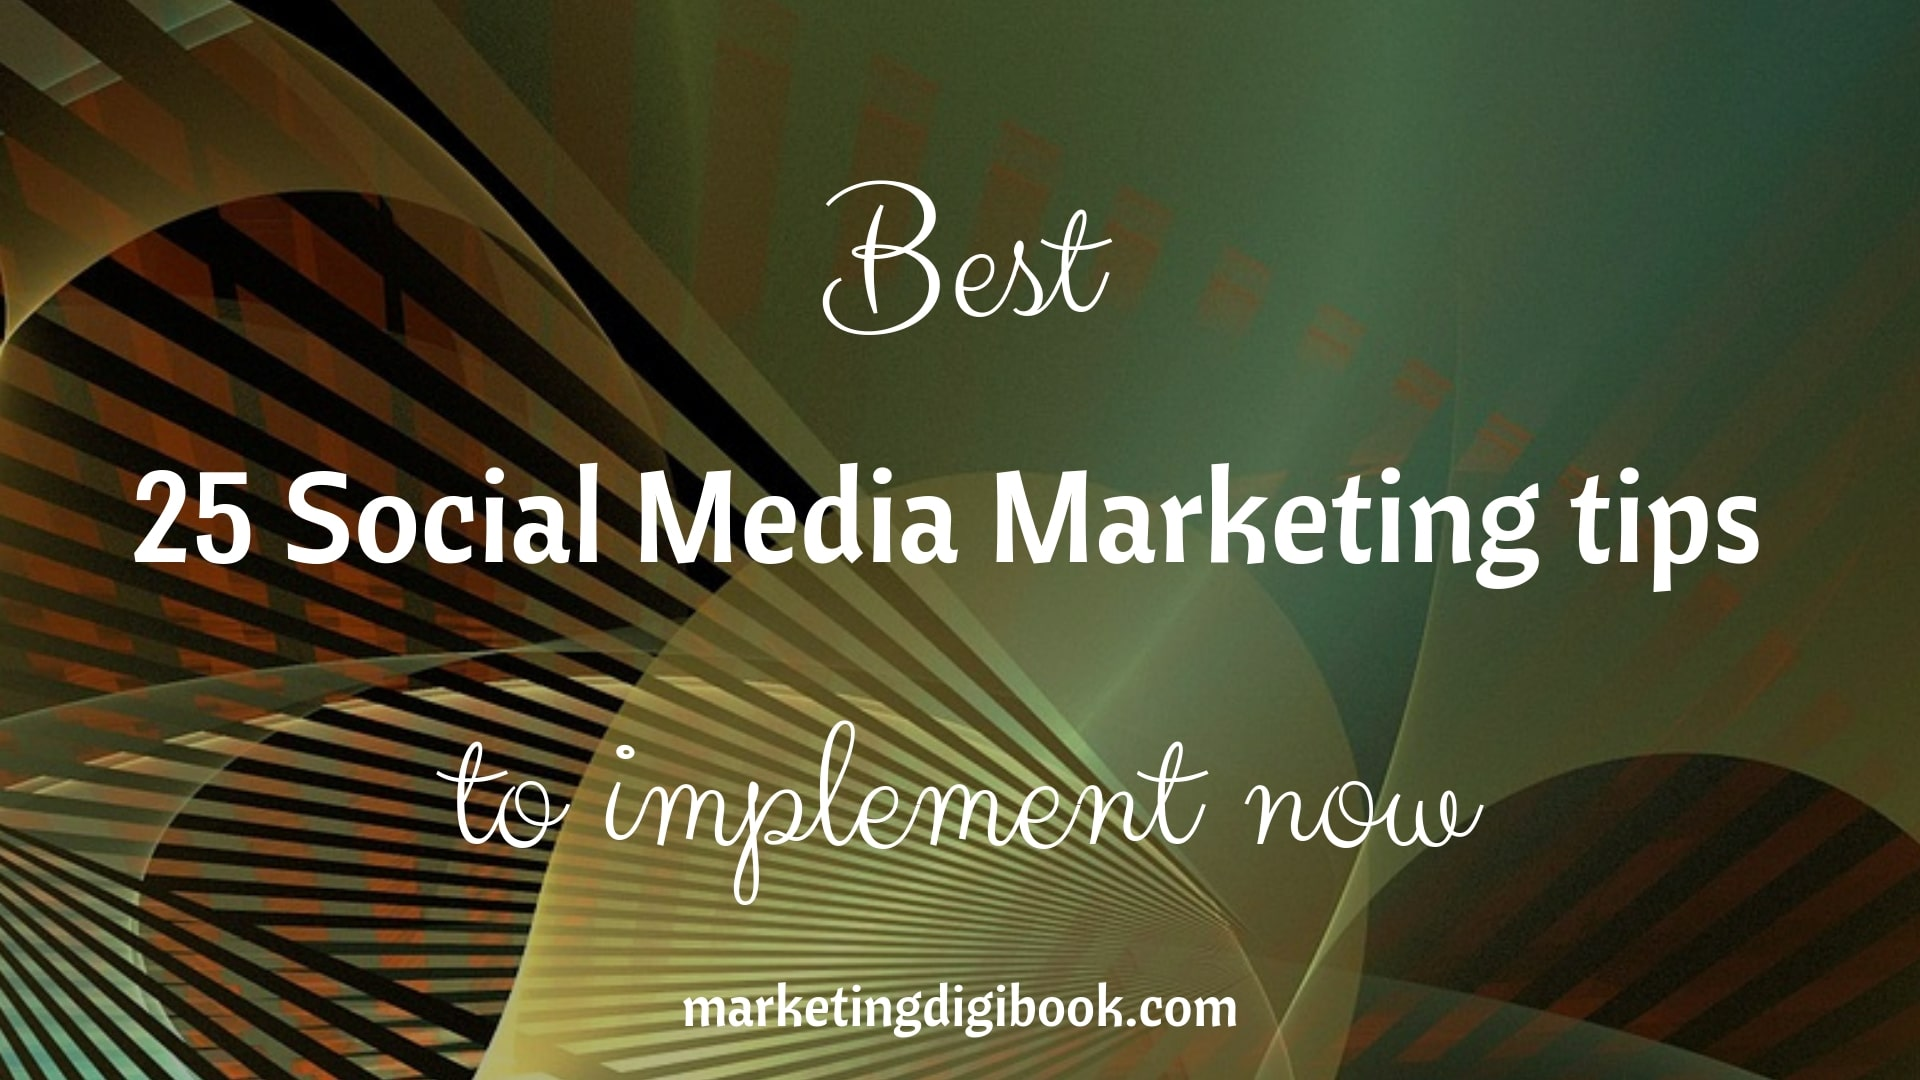 Best 25 Social Media Marketing tips to implement now